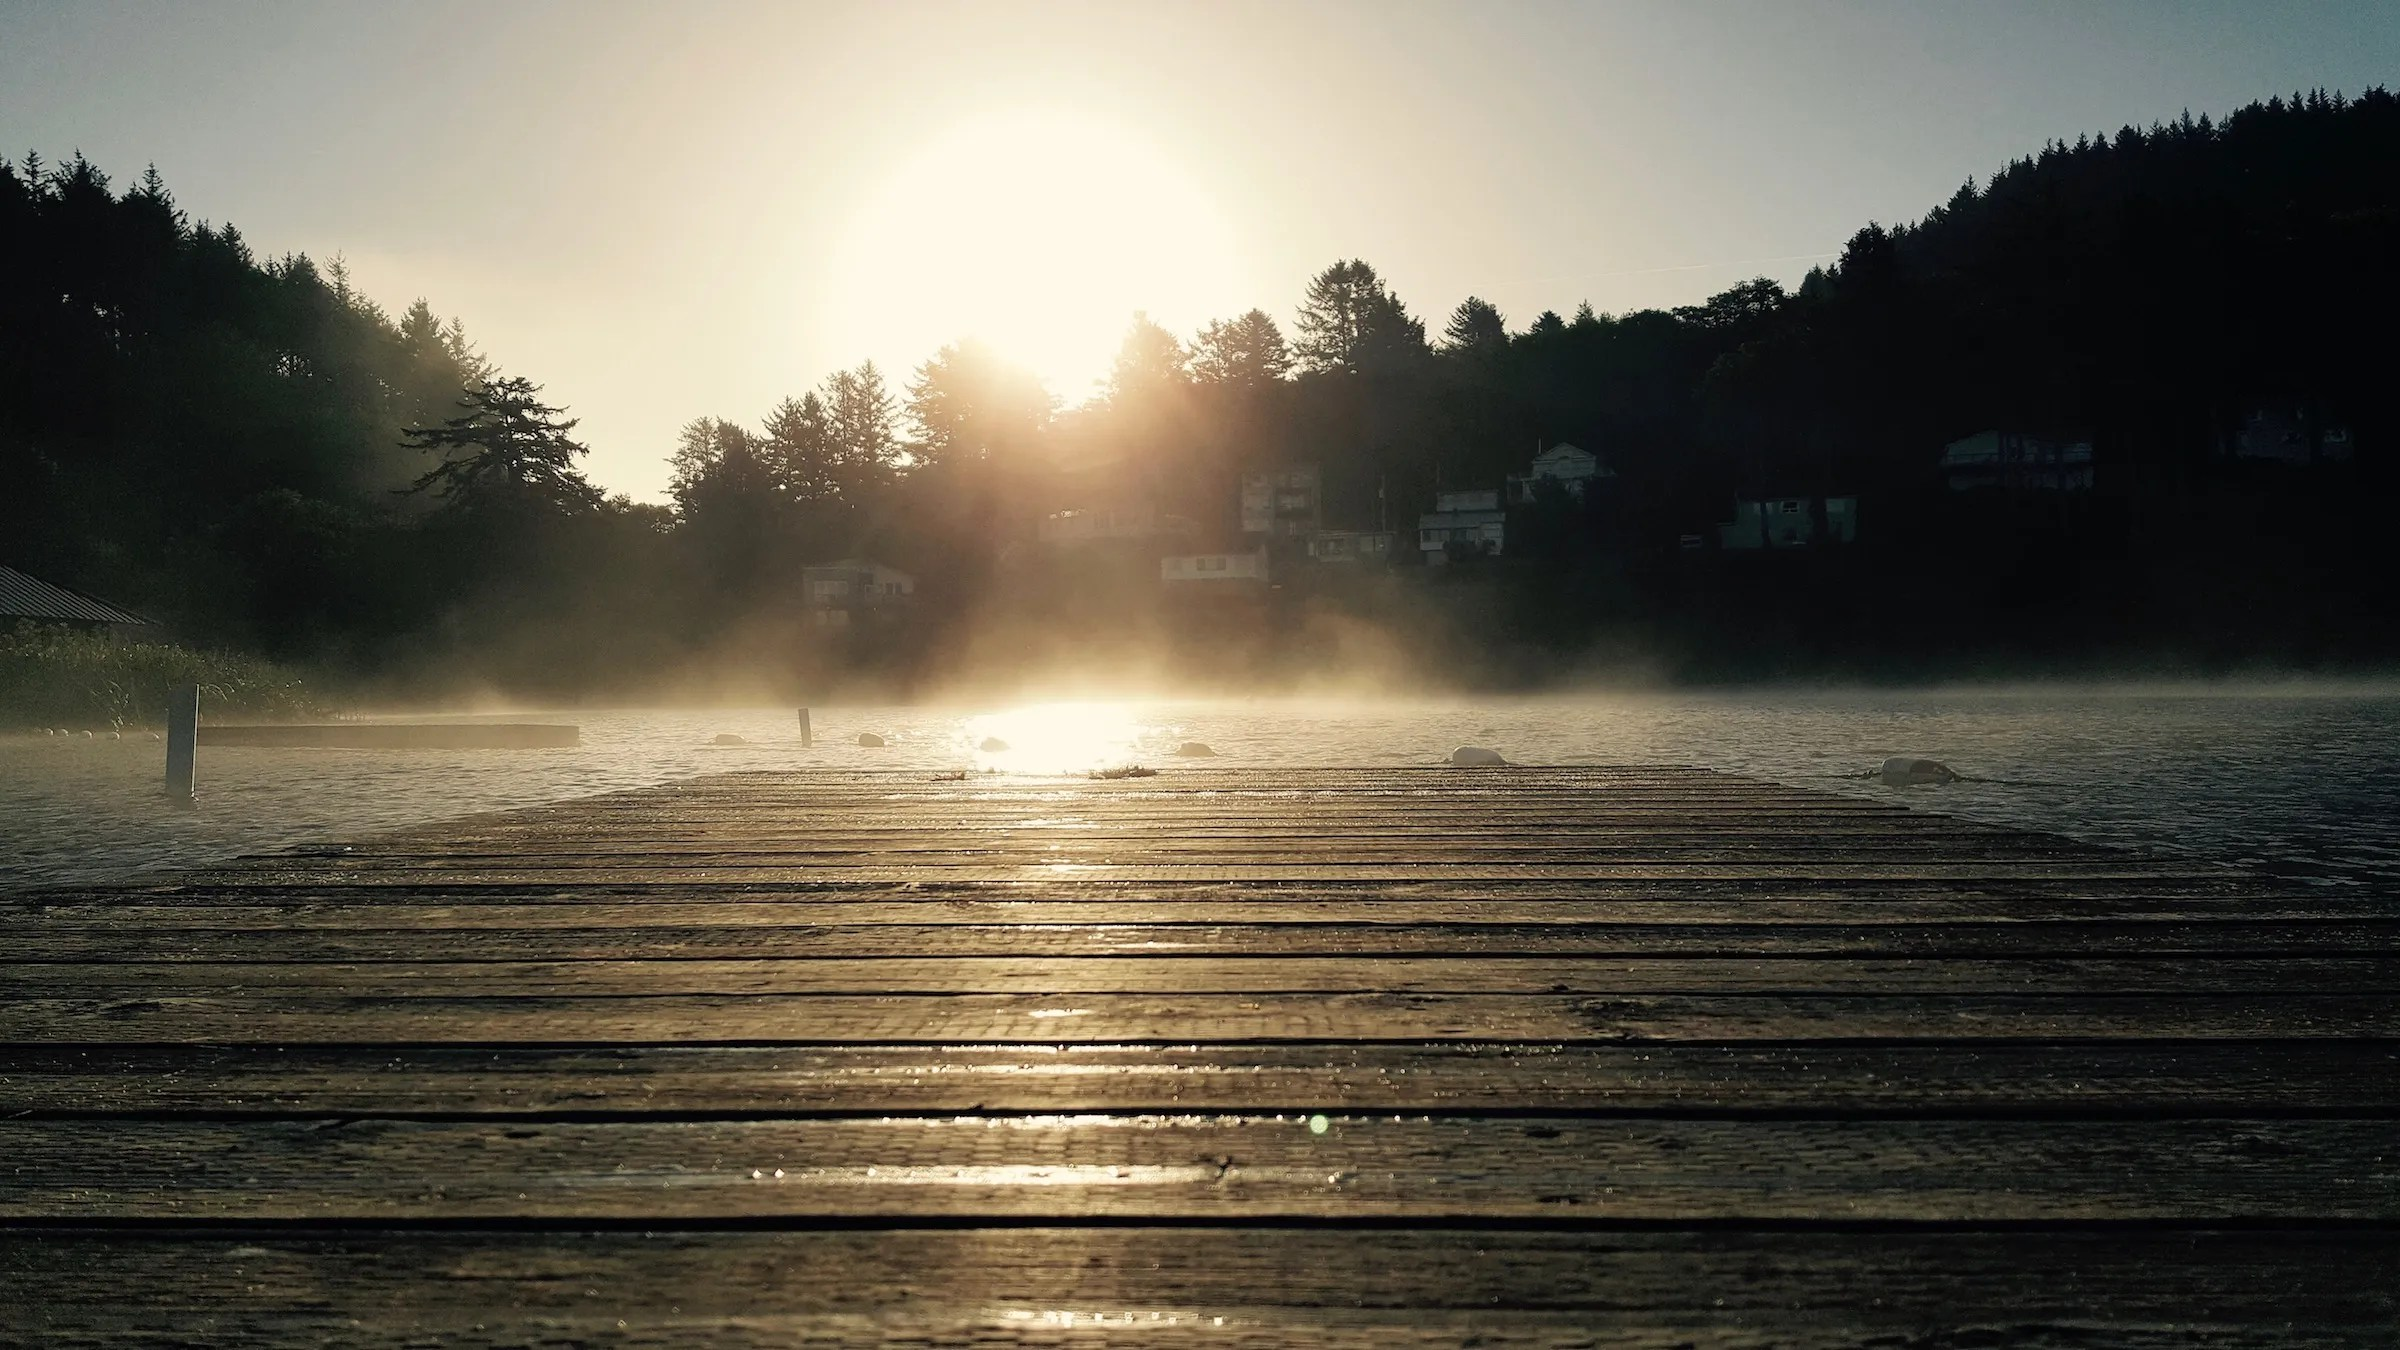 Mist over the dock